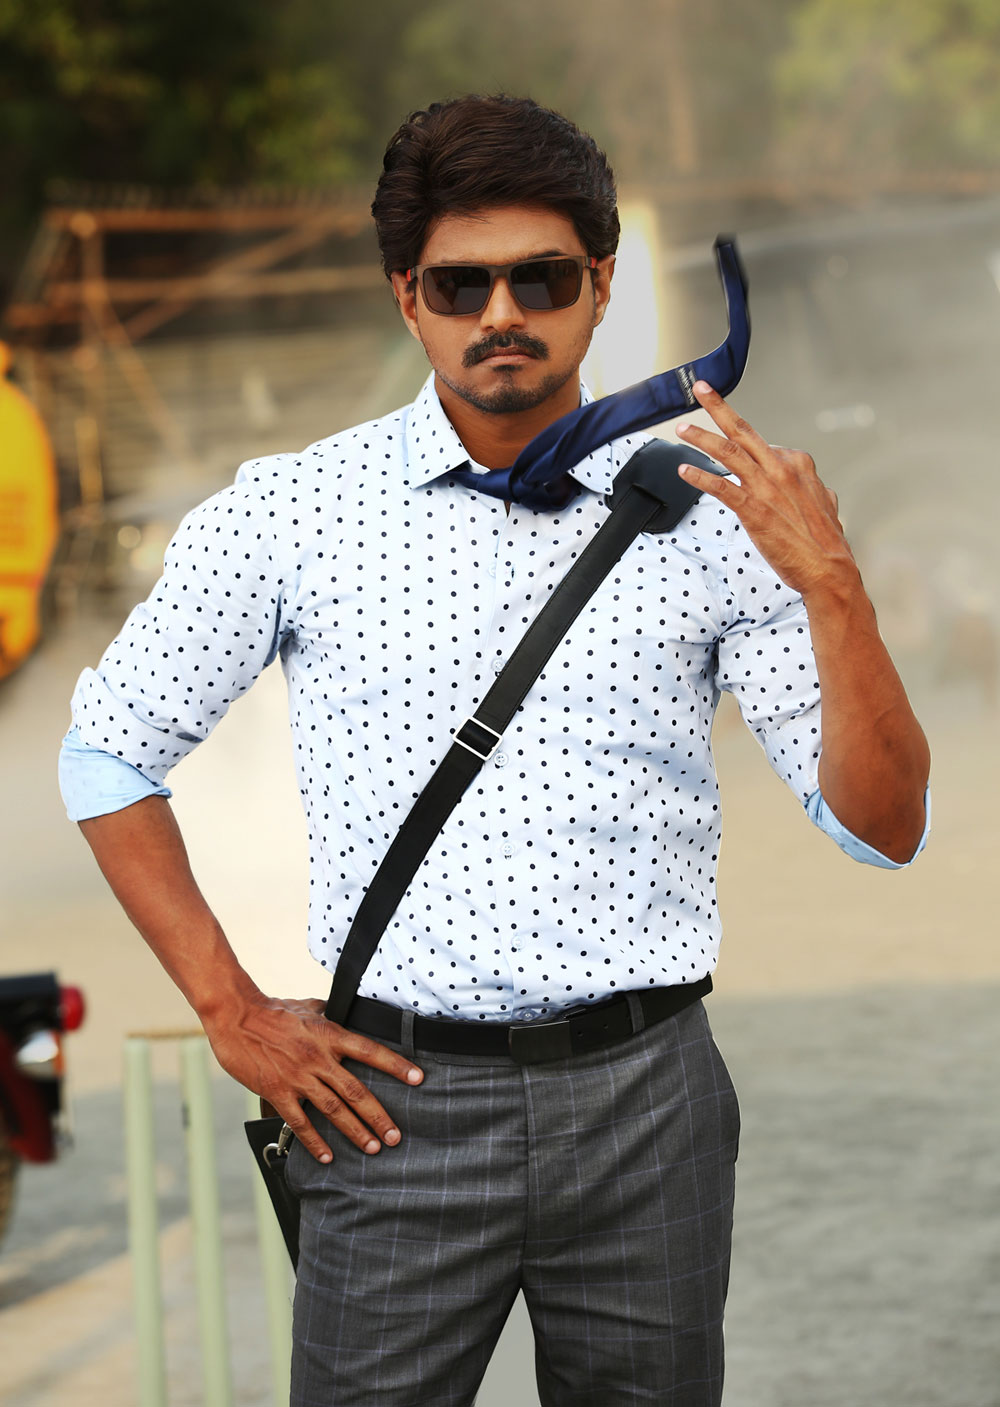 ilayathalapathi vijay bairavaa mobile desktop download wallpapers hd free photos